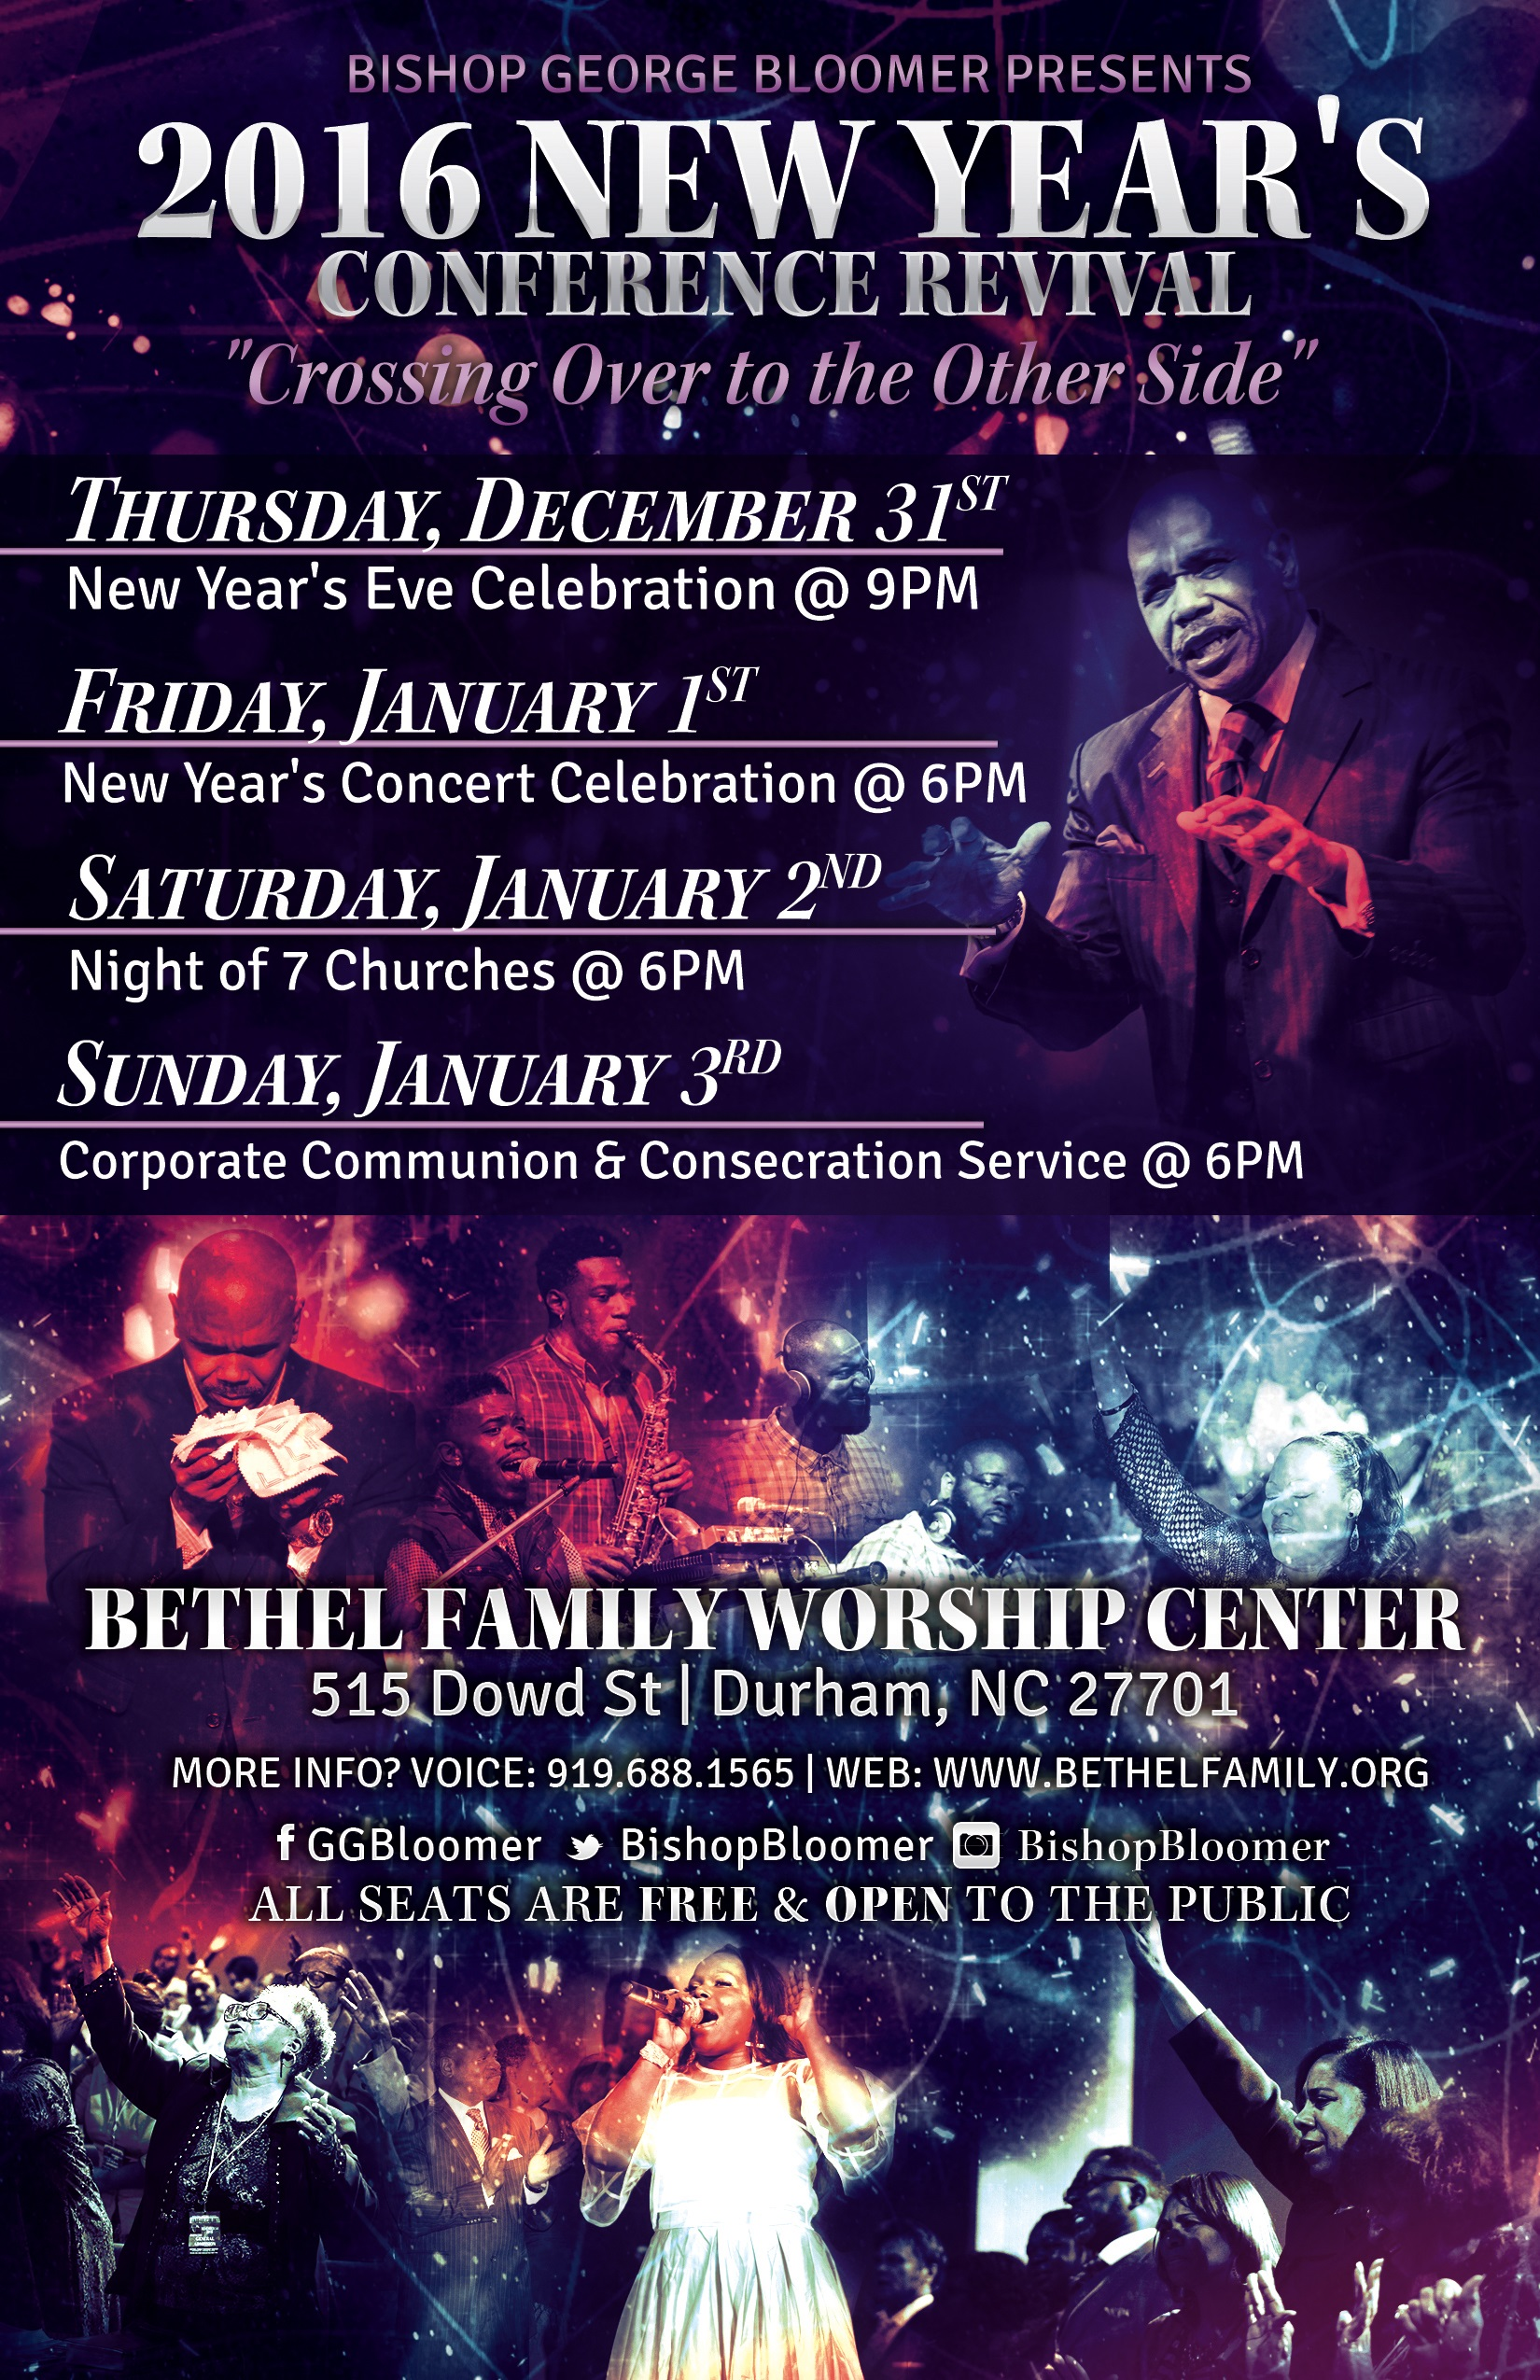 BGB - 2016 New Years - Conference Revival 5x7 (1)